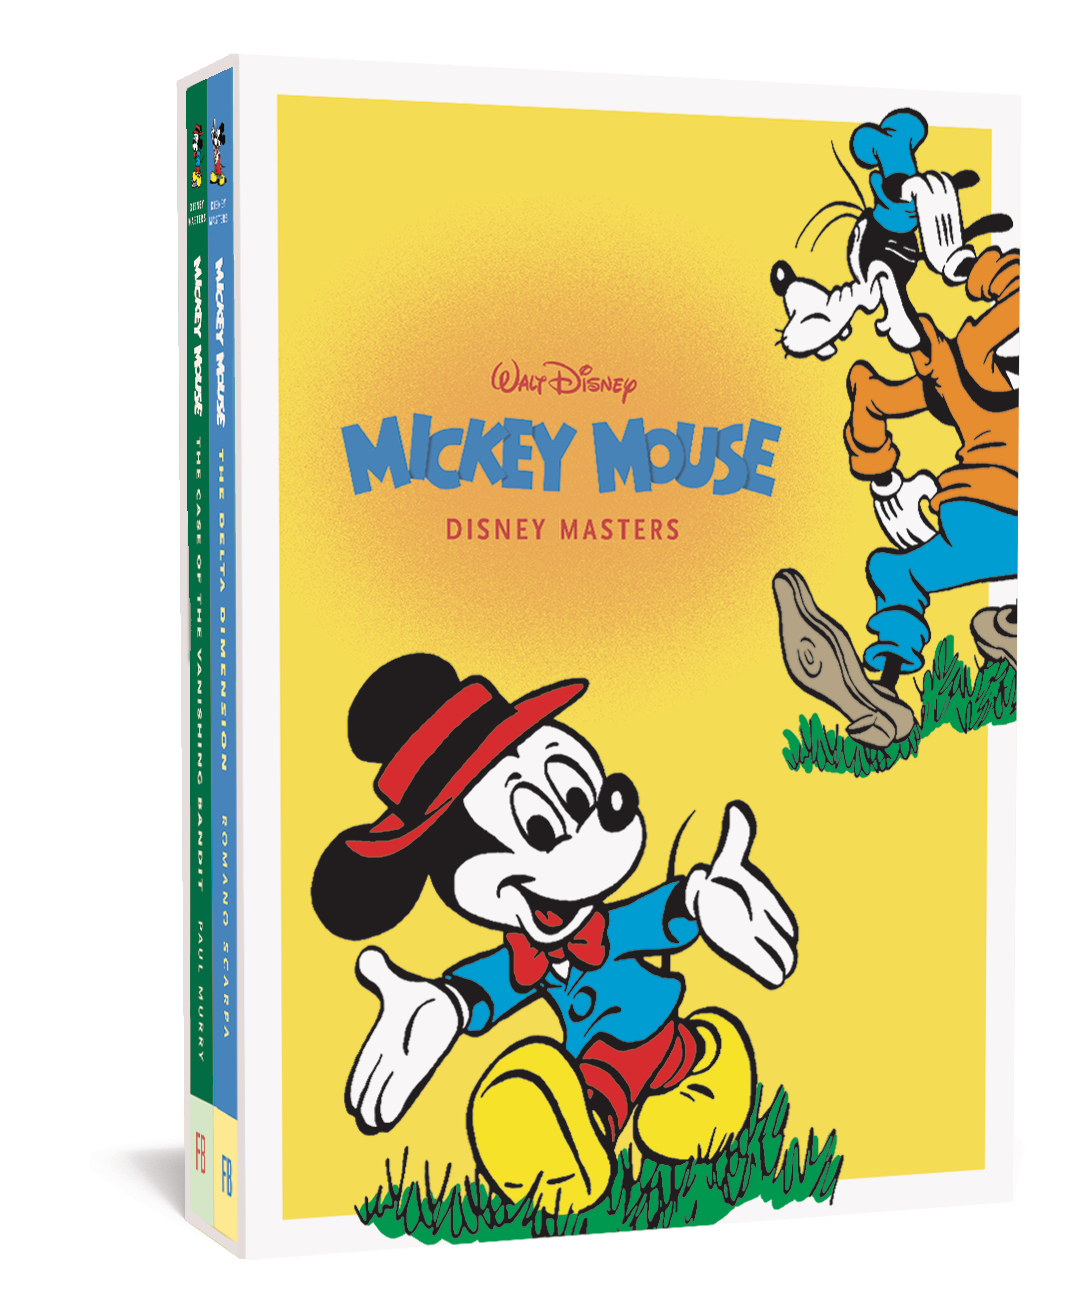 DISNEY MASTERS GIFT HC BOX SET VOL 1 & 3 MICKEY MOUSE